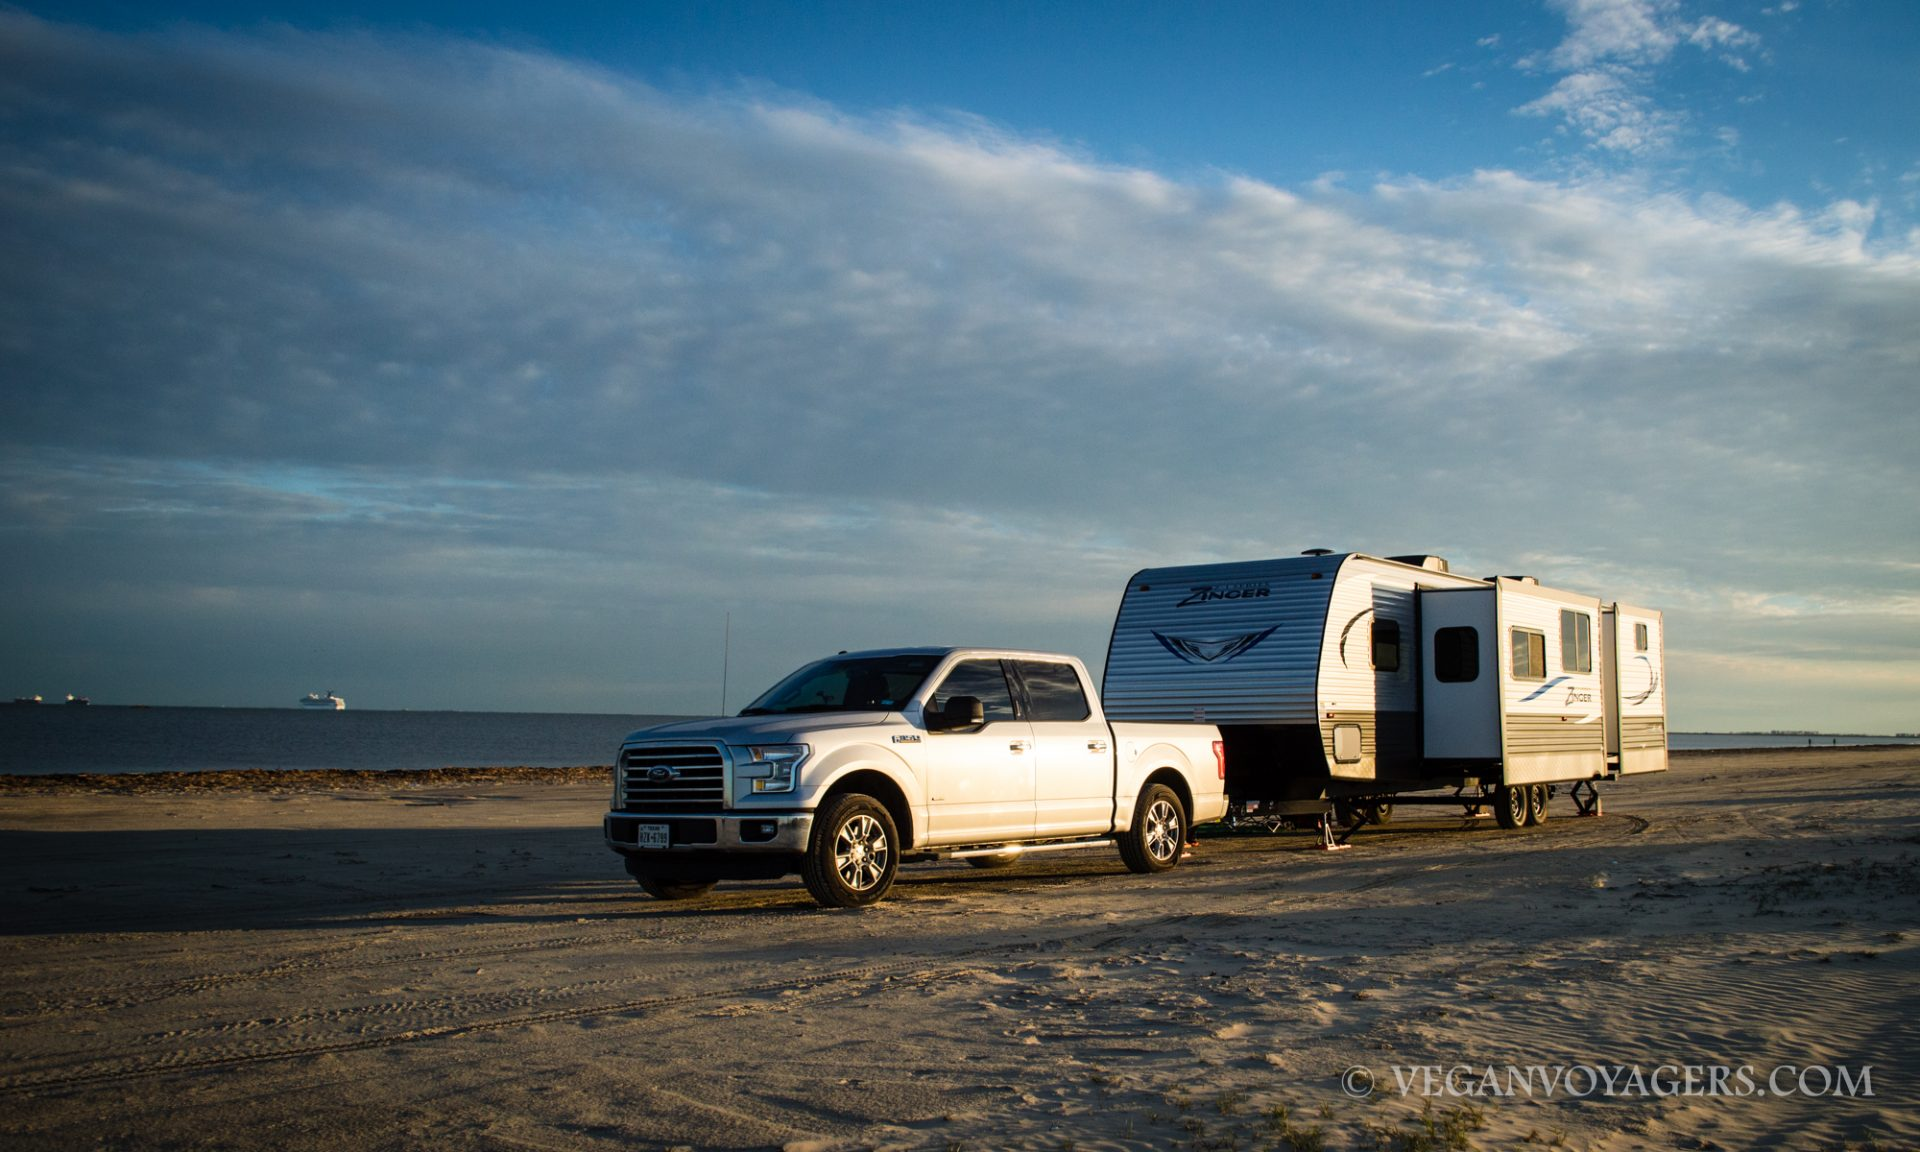 Our rig on the beach